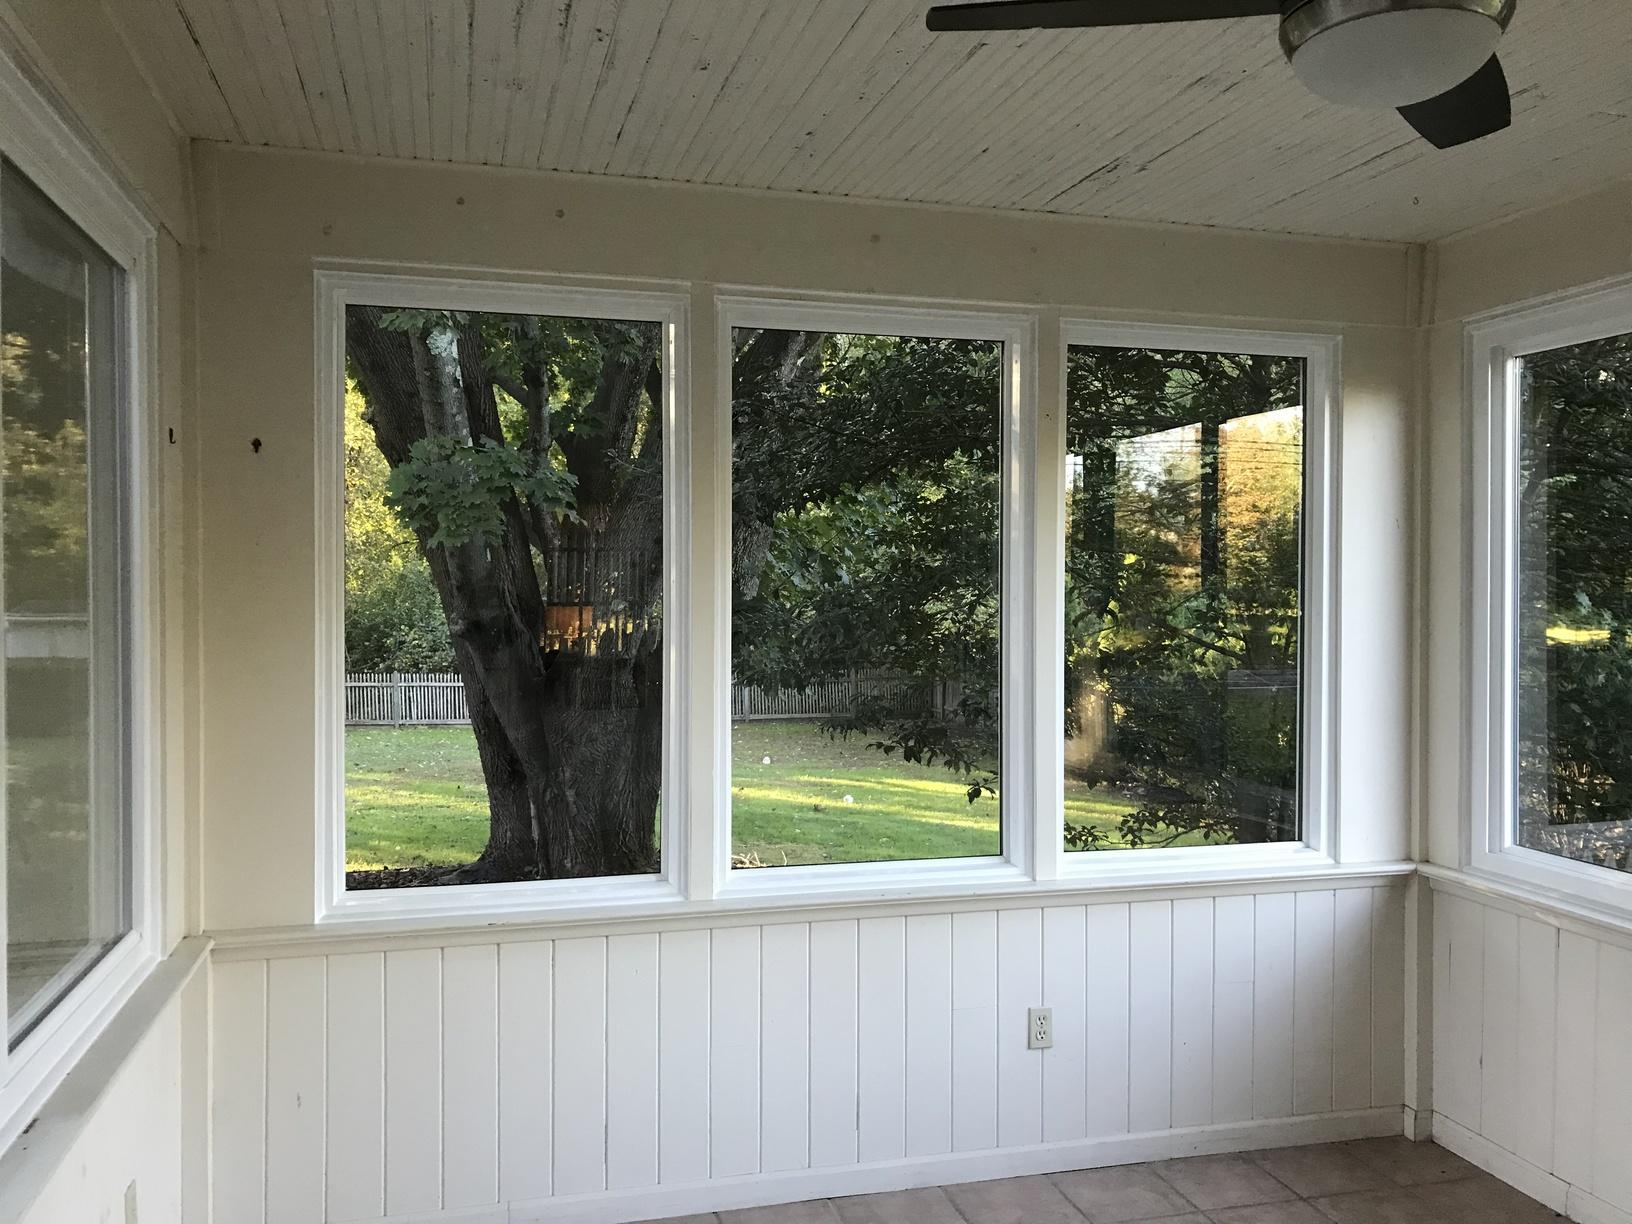 Lighting up Space with New Windows